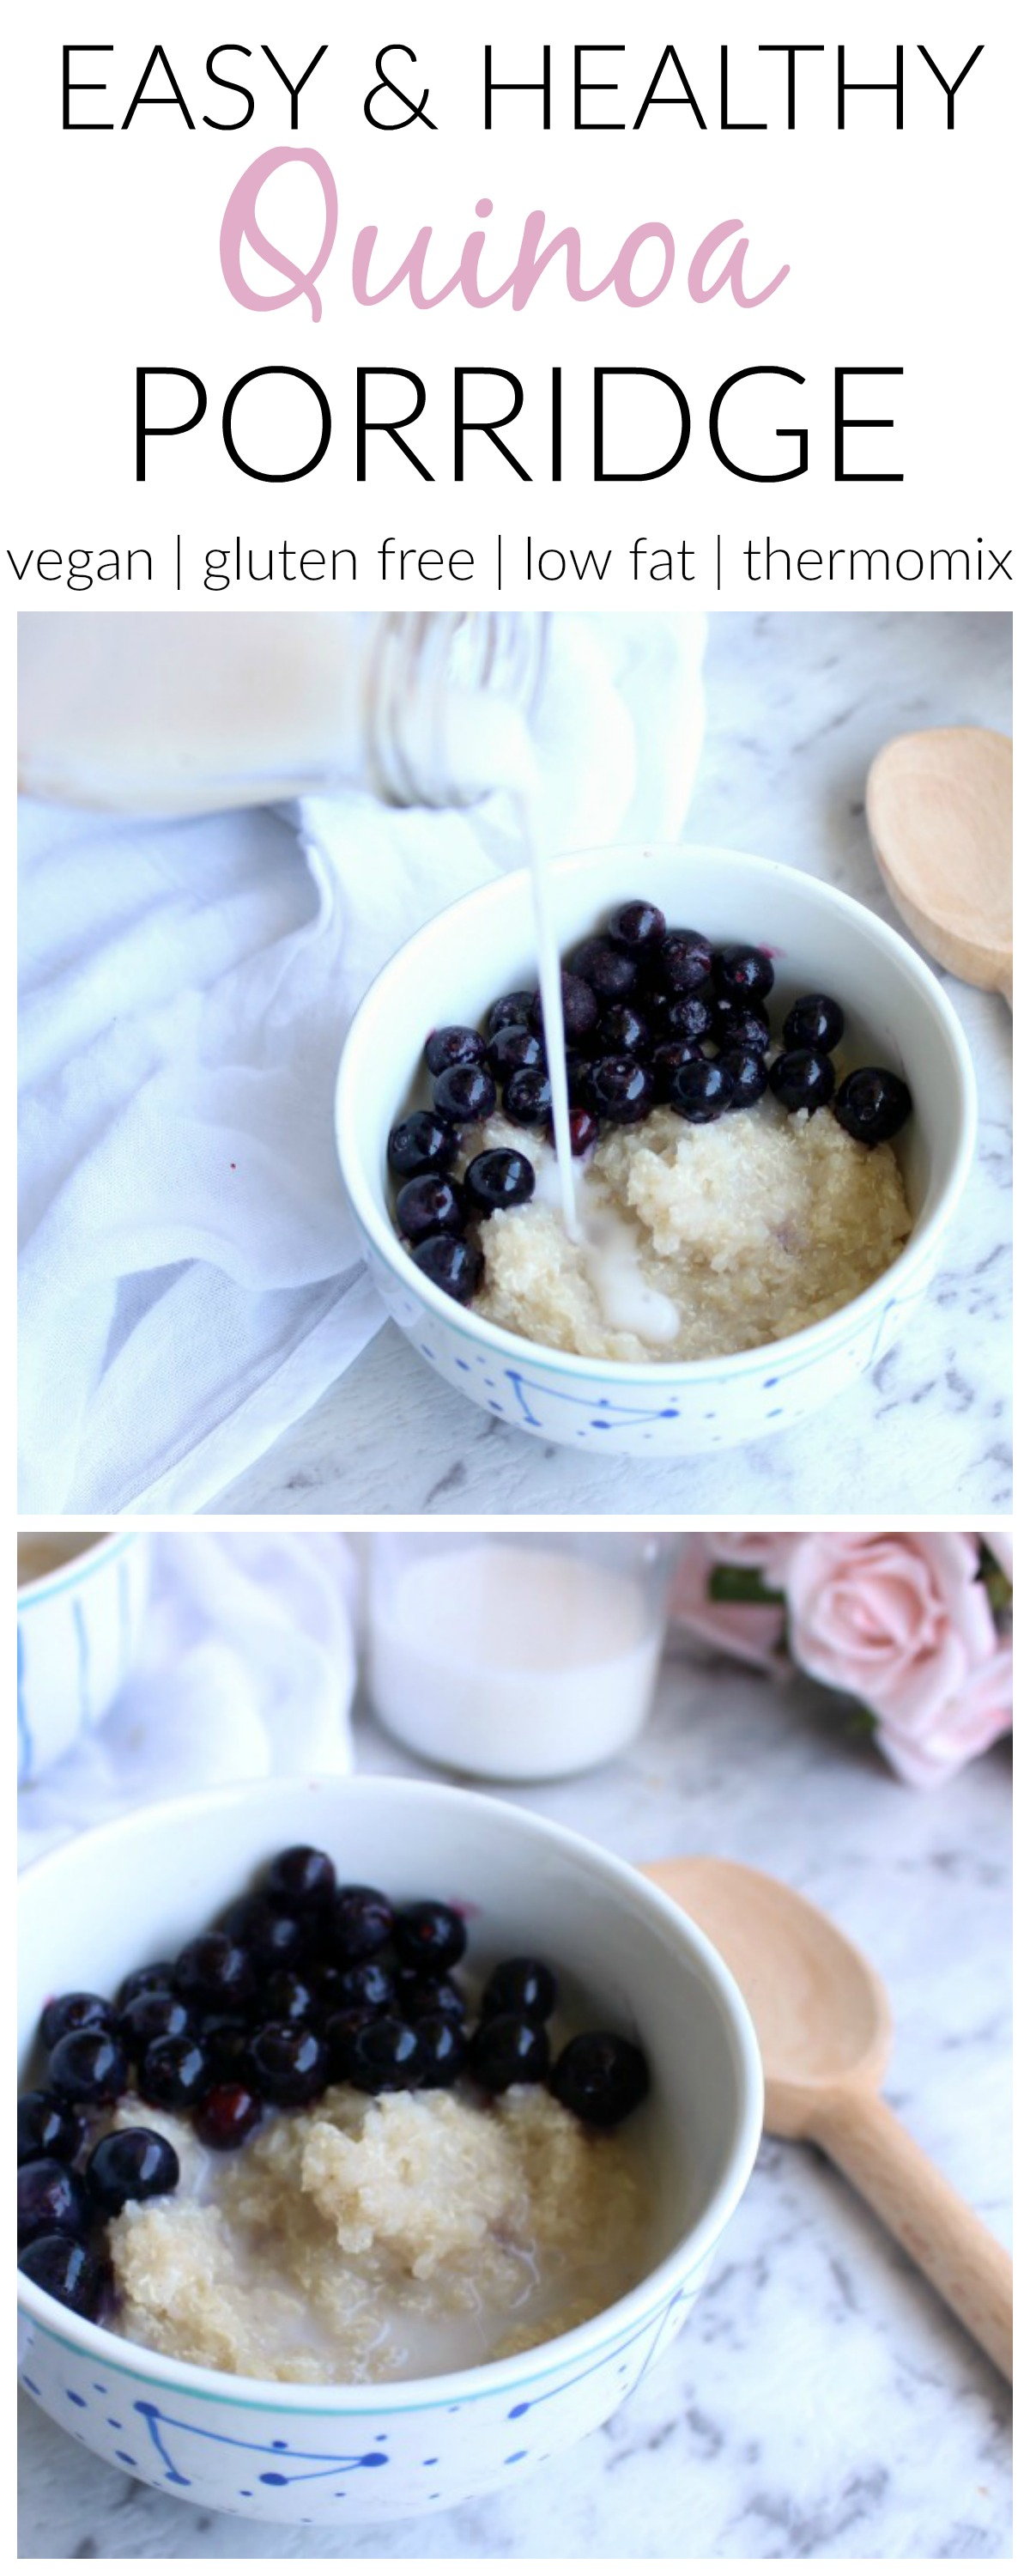 This easy and healthy quinoa porridge is just as nourishing, just as filling and delicious. It also has the added bonus of being totally gluten free!